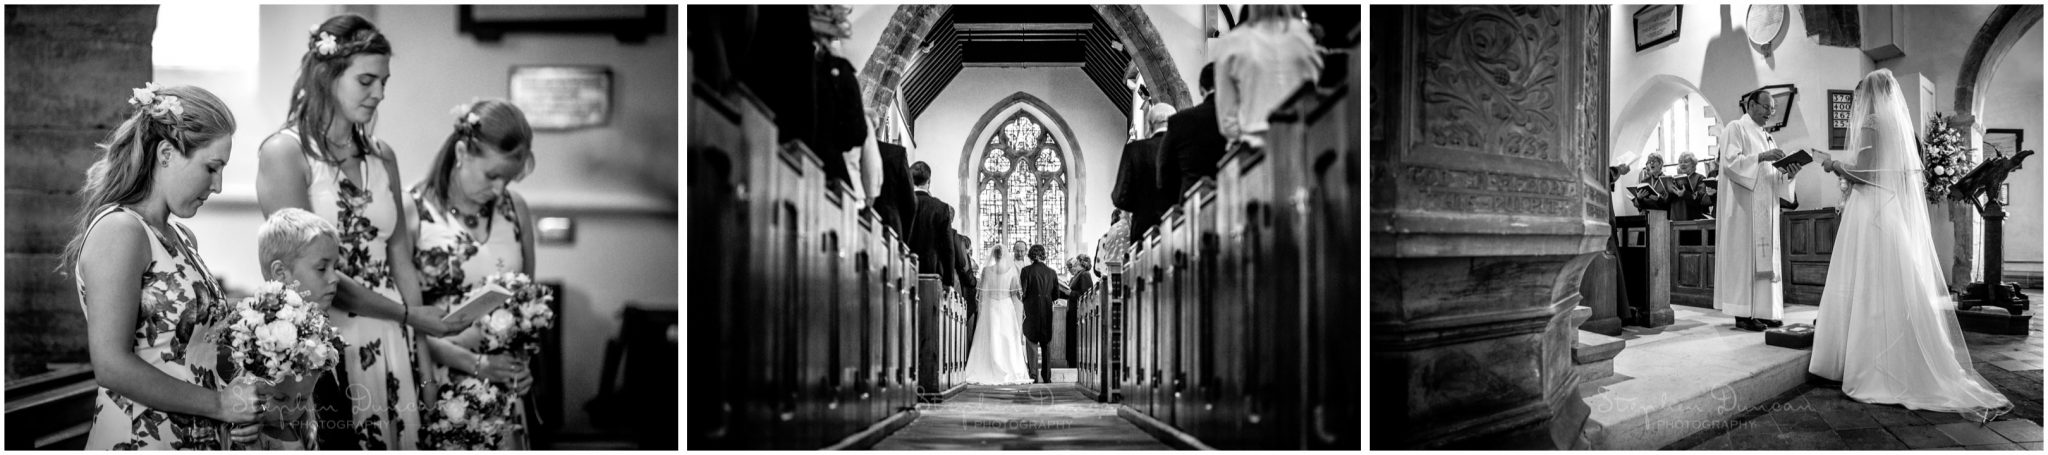 Lymington wedding photography boldre church marriage service